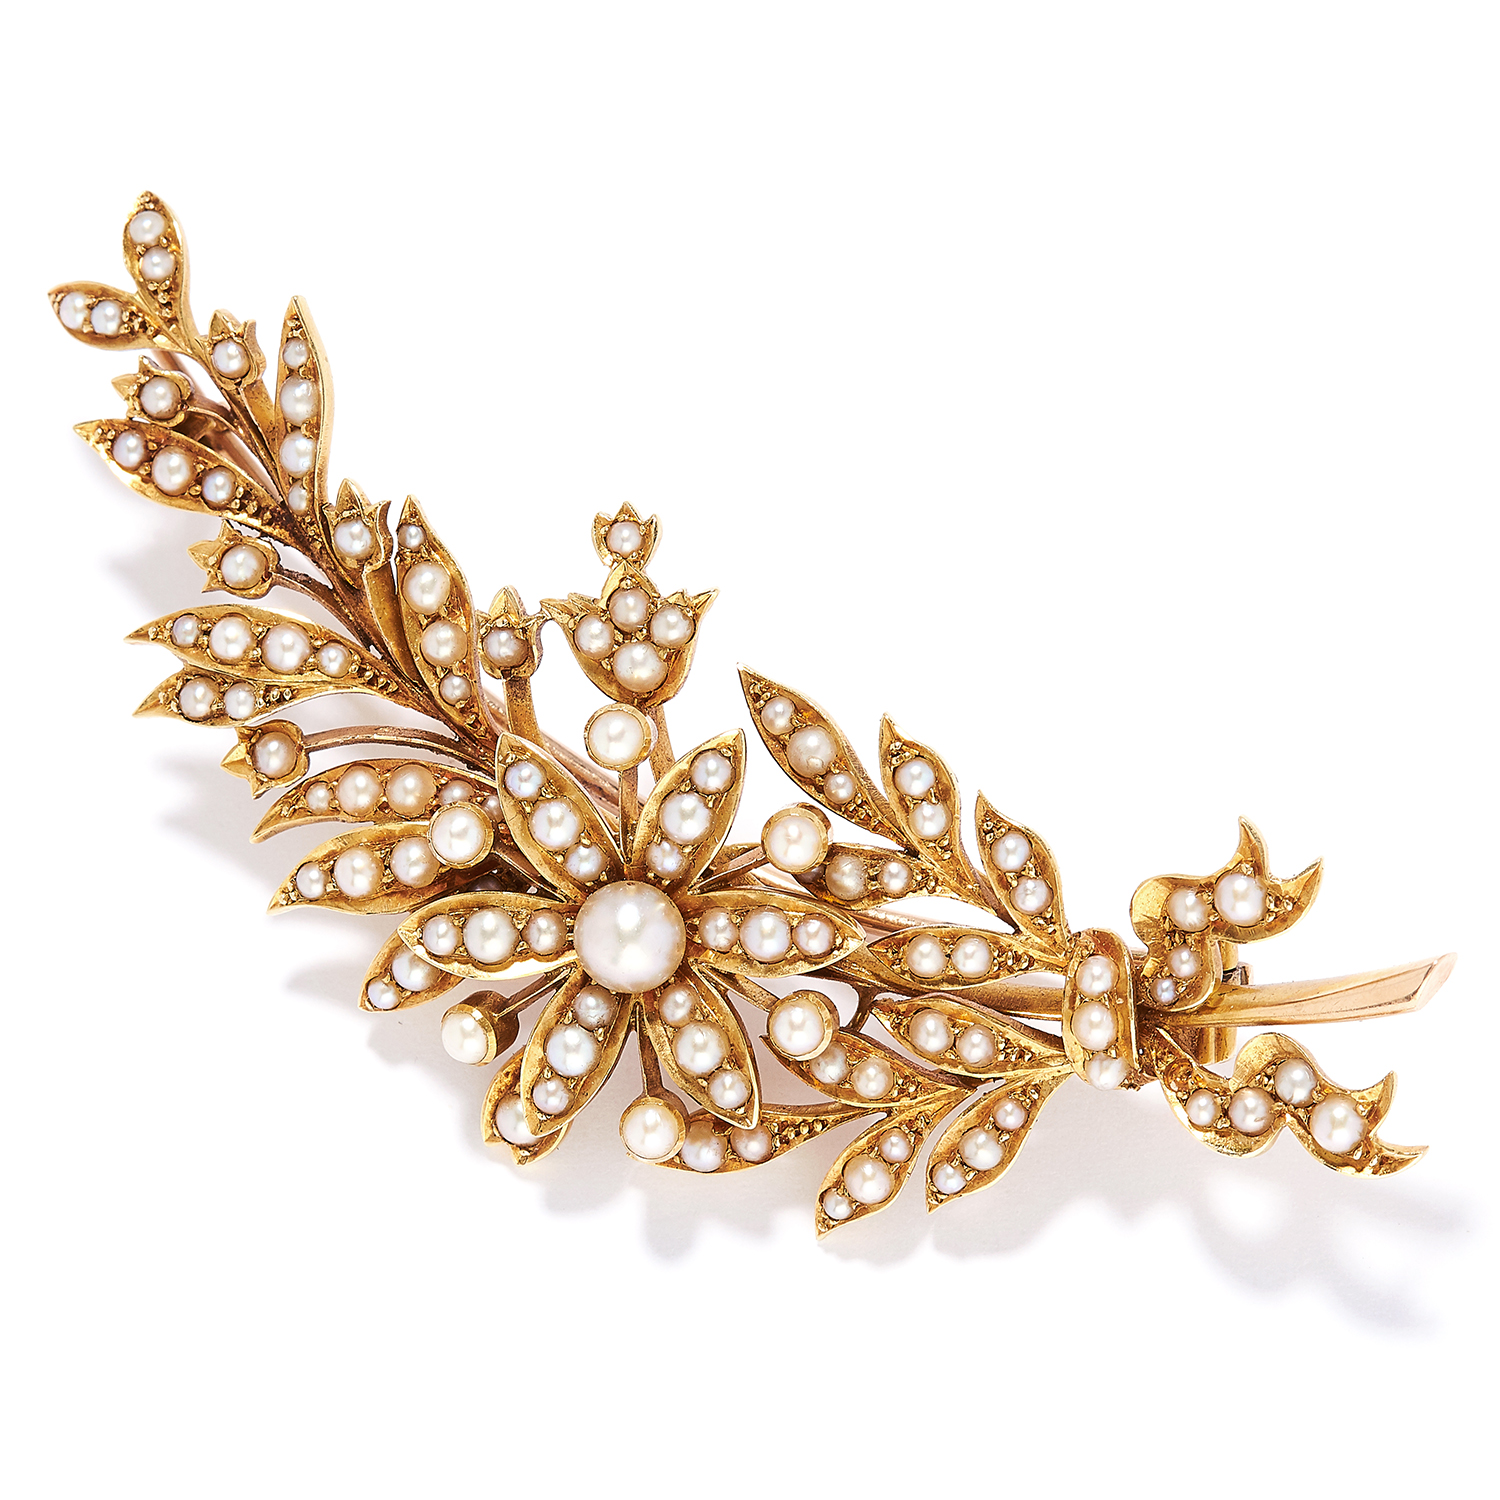 ANTIQUE PEARL FLOWER SPRAY BROOCH in high carat yellow gold, set with seed pearls in flower spray